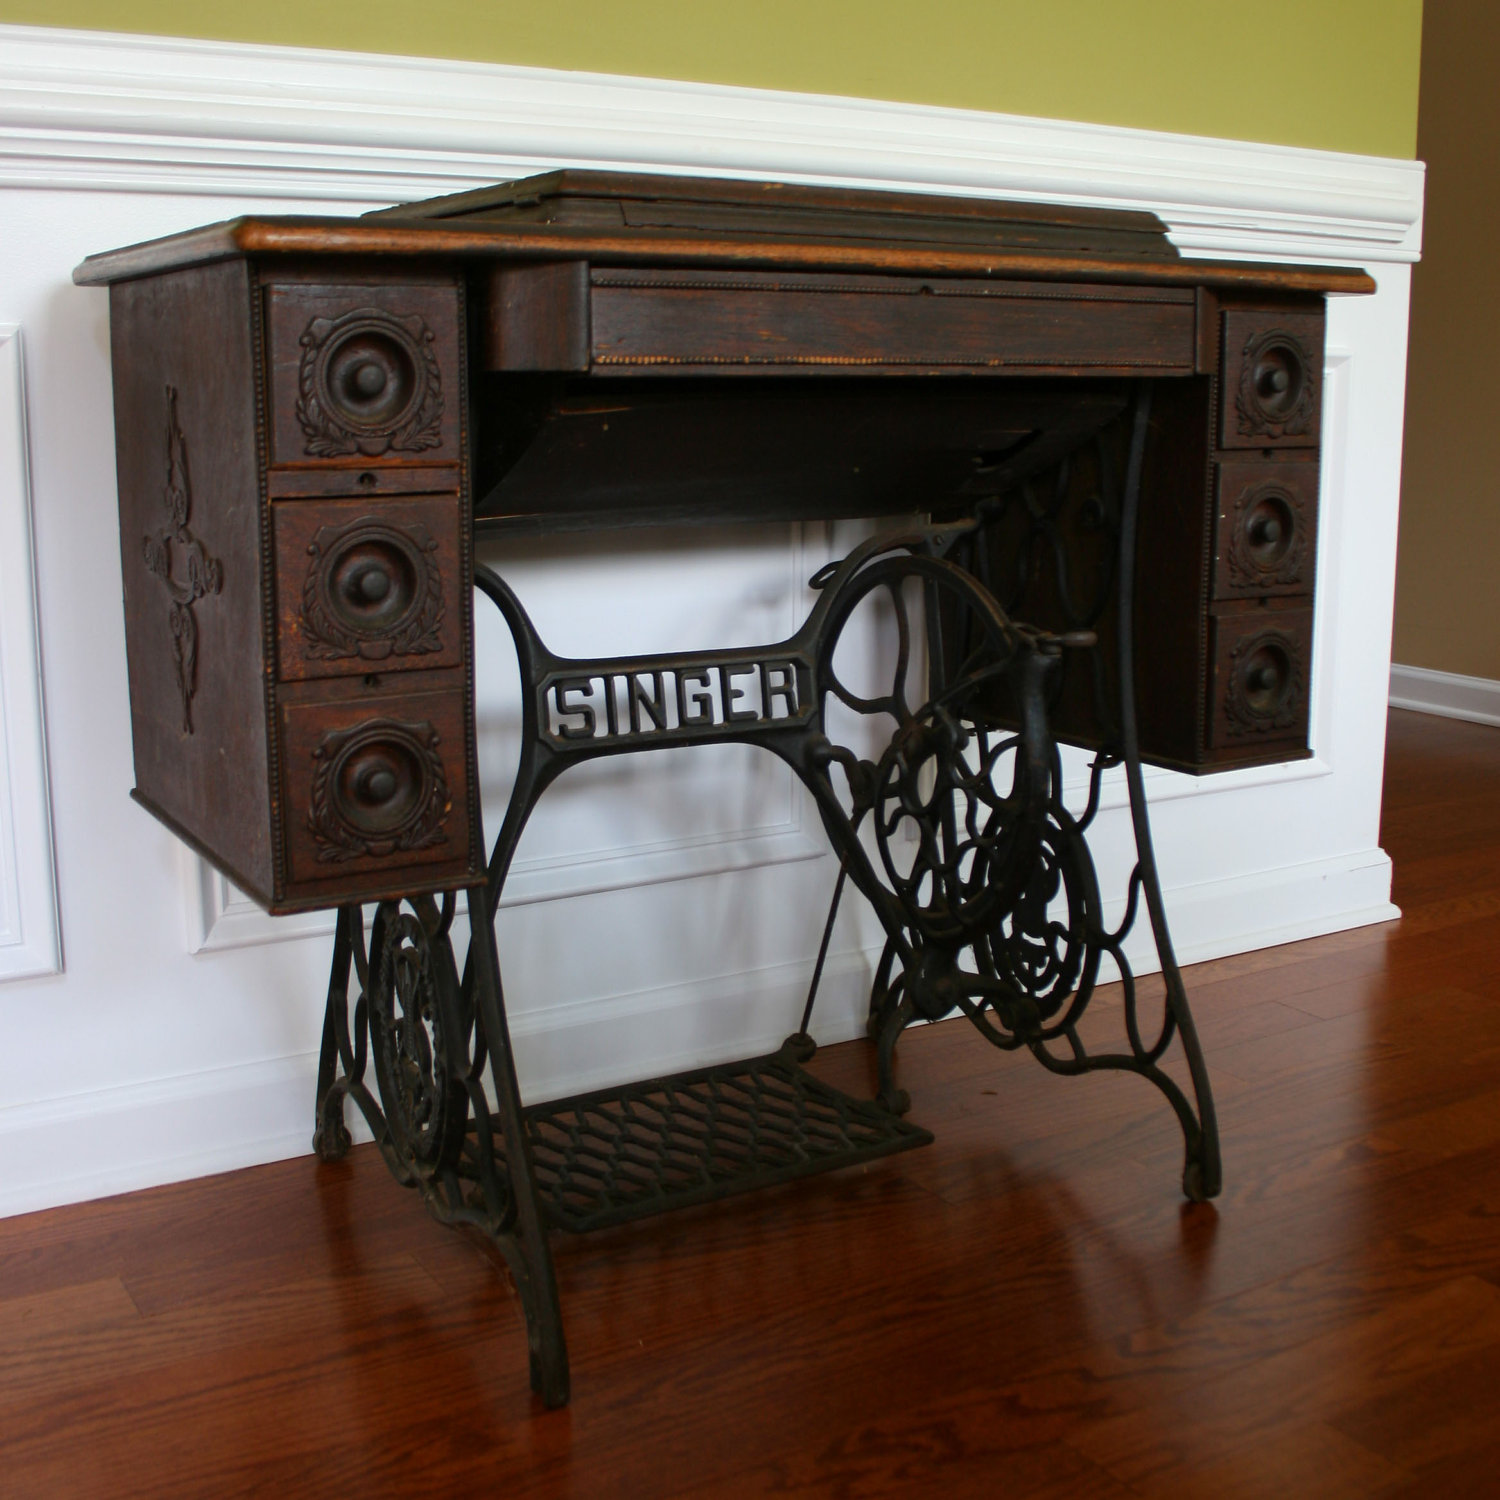 Genial Who Remembers Seeing Their Mom Or Grandma Sitting At One Of These Sewing  Machine Tables? They Were Built So They Had A Spot To Put The Sewing Machine  Into, ...